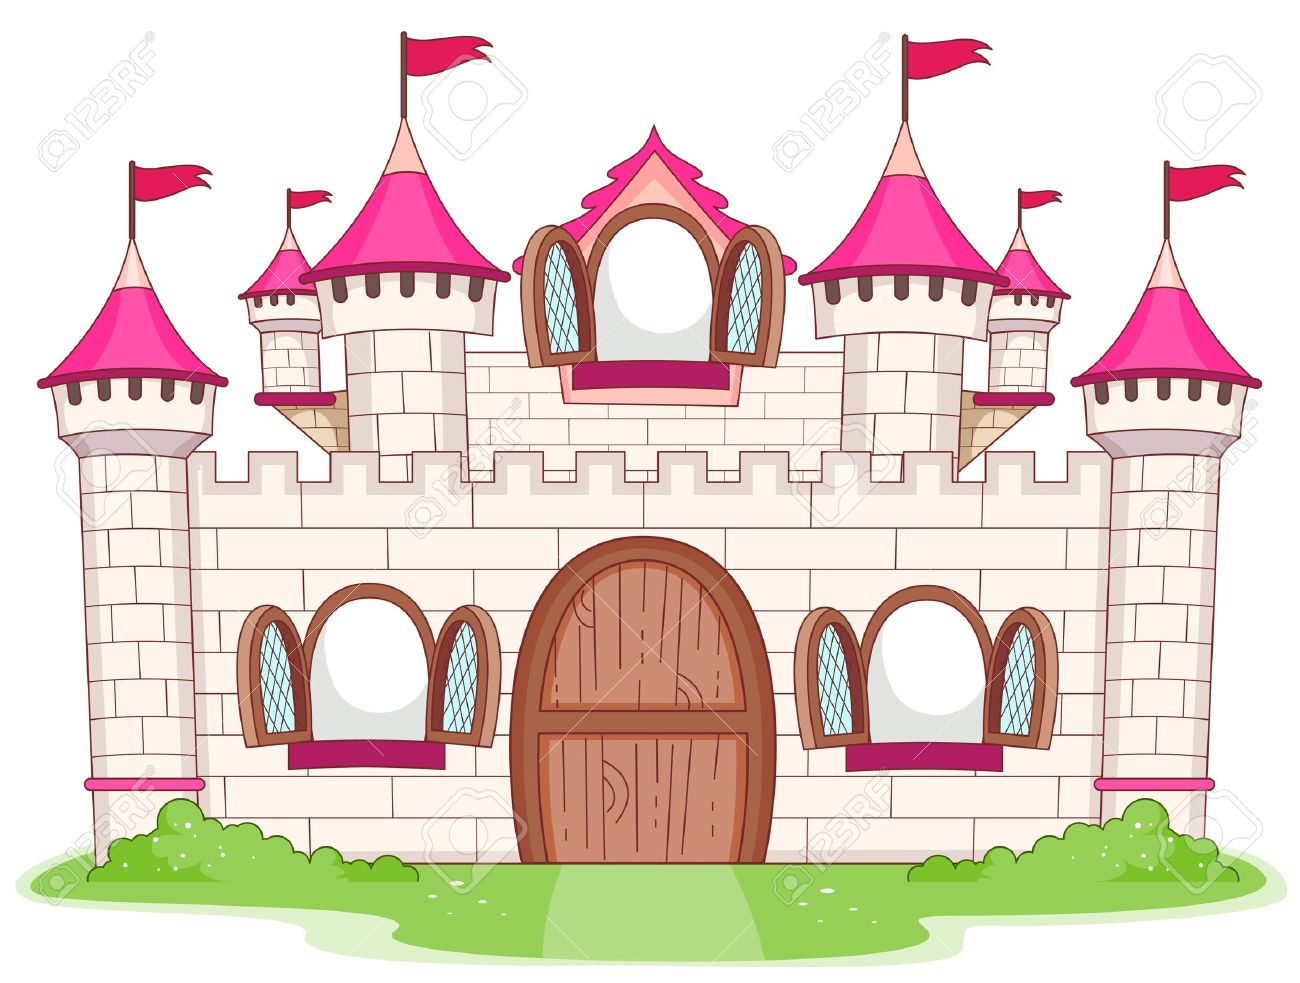 Clipart palaces banner free stock Palace clipart cartoon - 55 transparent clip arts, images and ... banner free stock